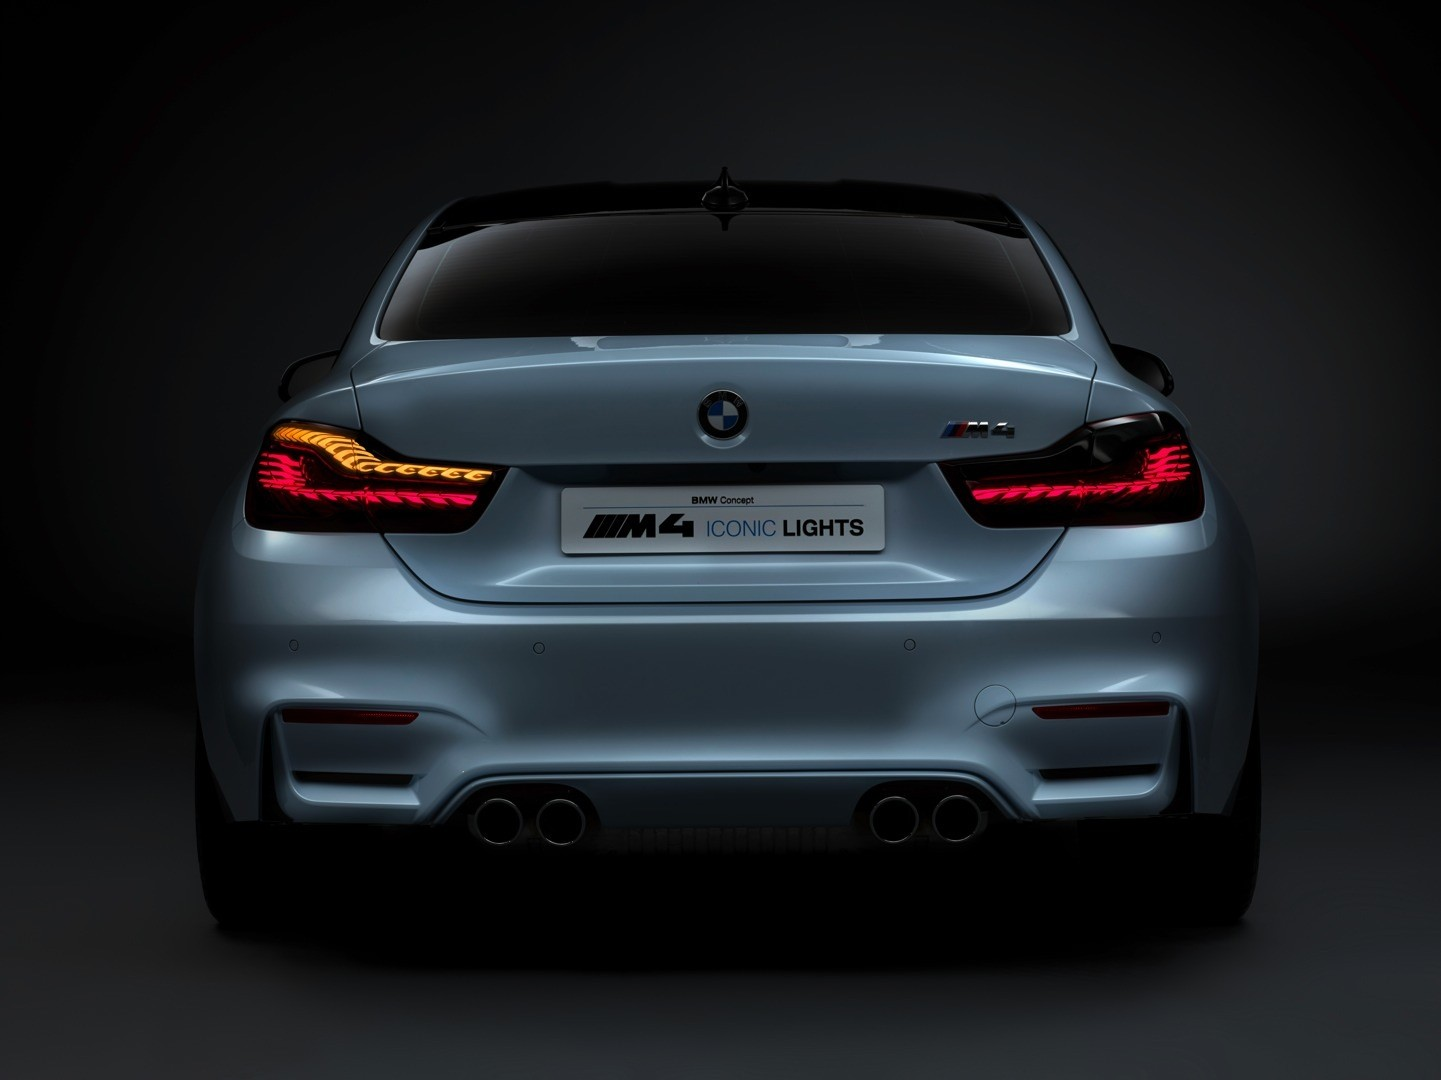 bmw m4 concept iconic lights brings intelligent laser beams and oleds at ces